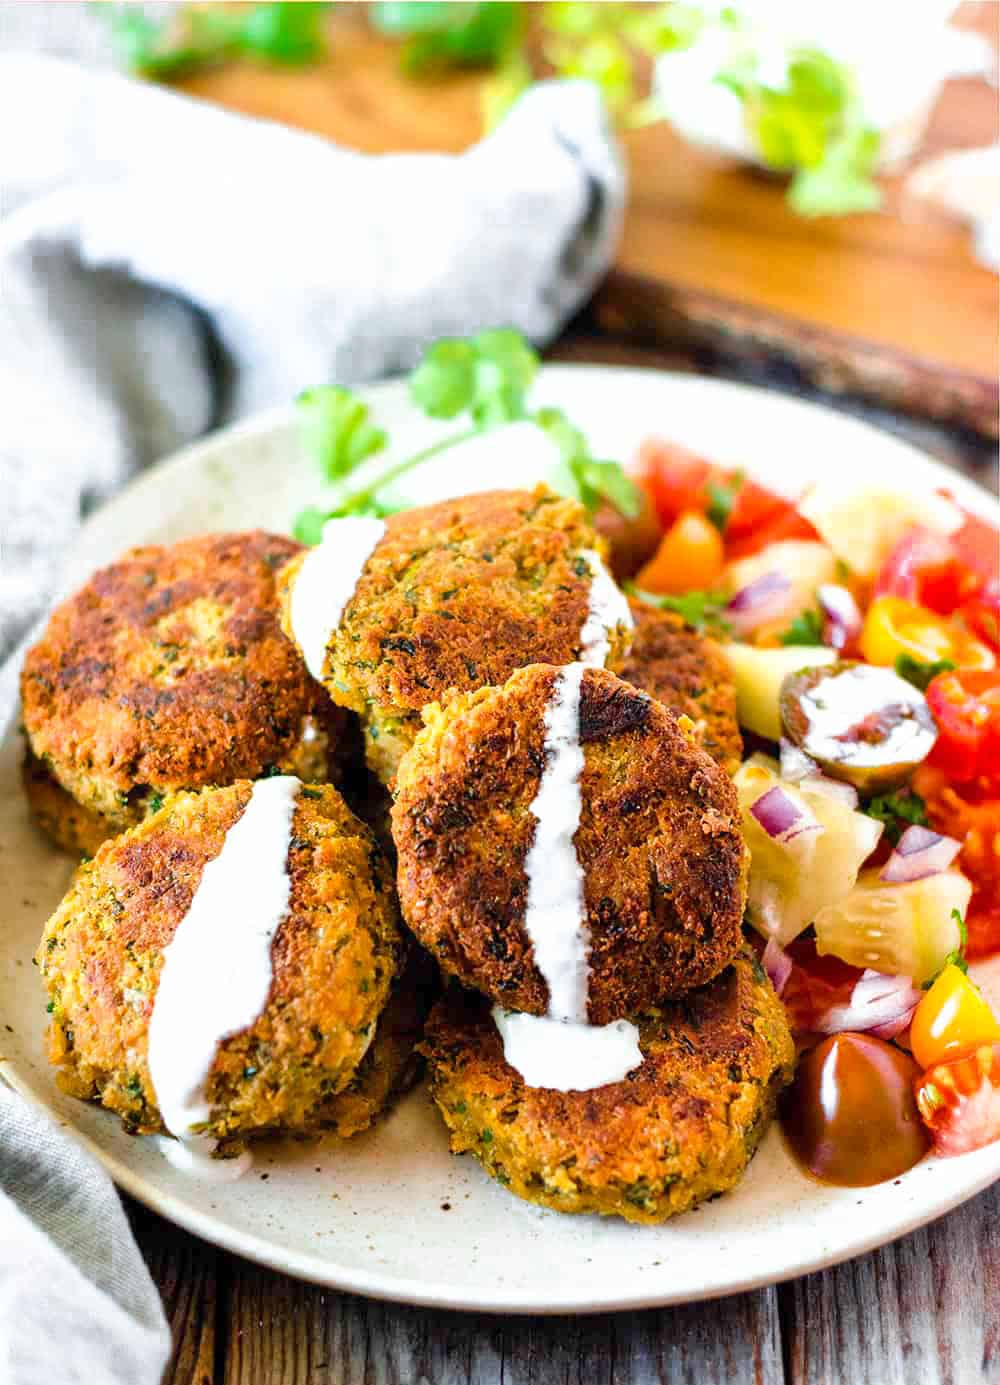 what is falafel mix made of